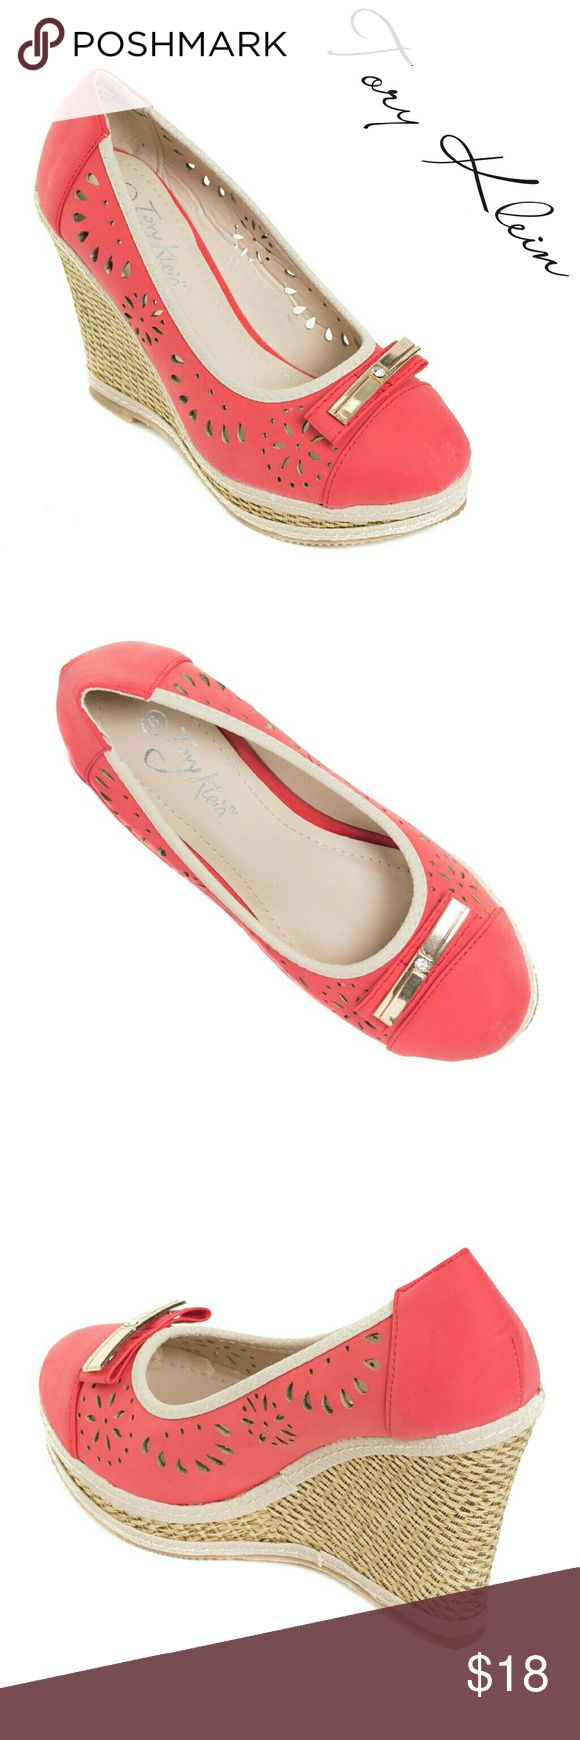 "Women Wedge Sandals with Bow, HW-1677, Red Brand new Tory K woman perforated red espadrilles in PU leather with a flat bow buckle in the front. Platform measures about 4"". Cushioned sole adds to the comfort. Very festive summer shoe! A true statement in ladies shoes fashion! Tory K  Shoes Wedges"